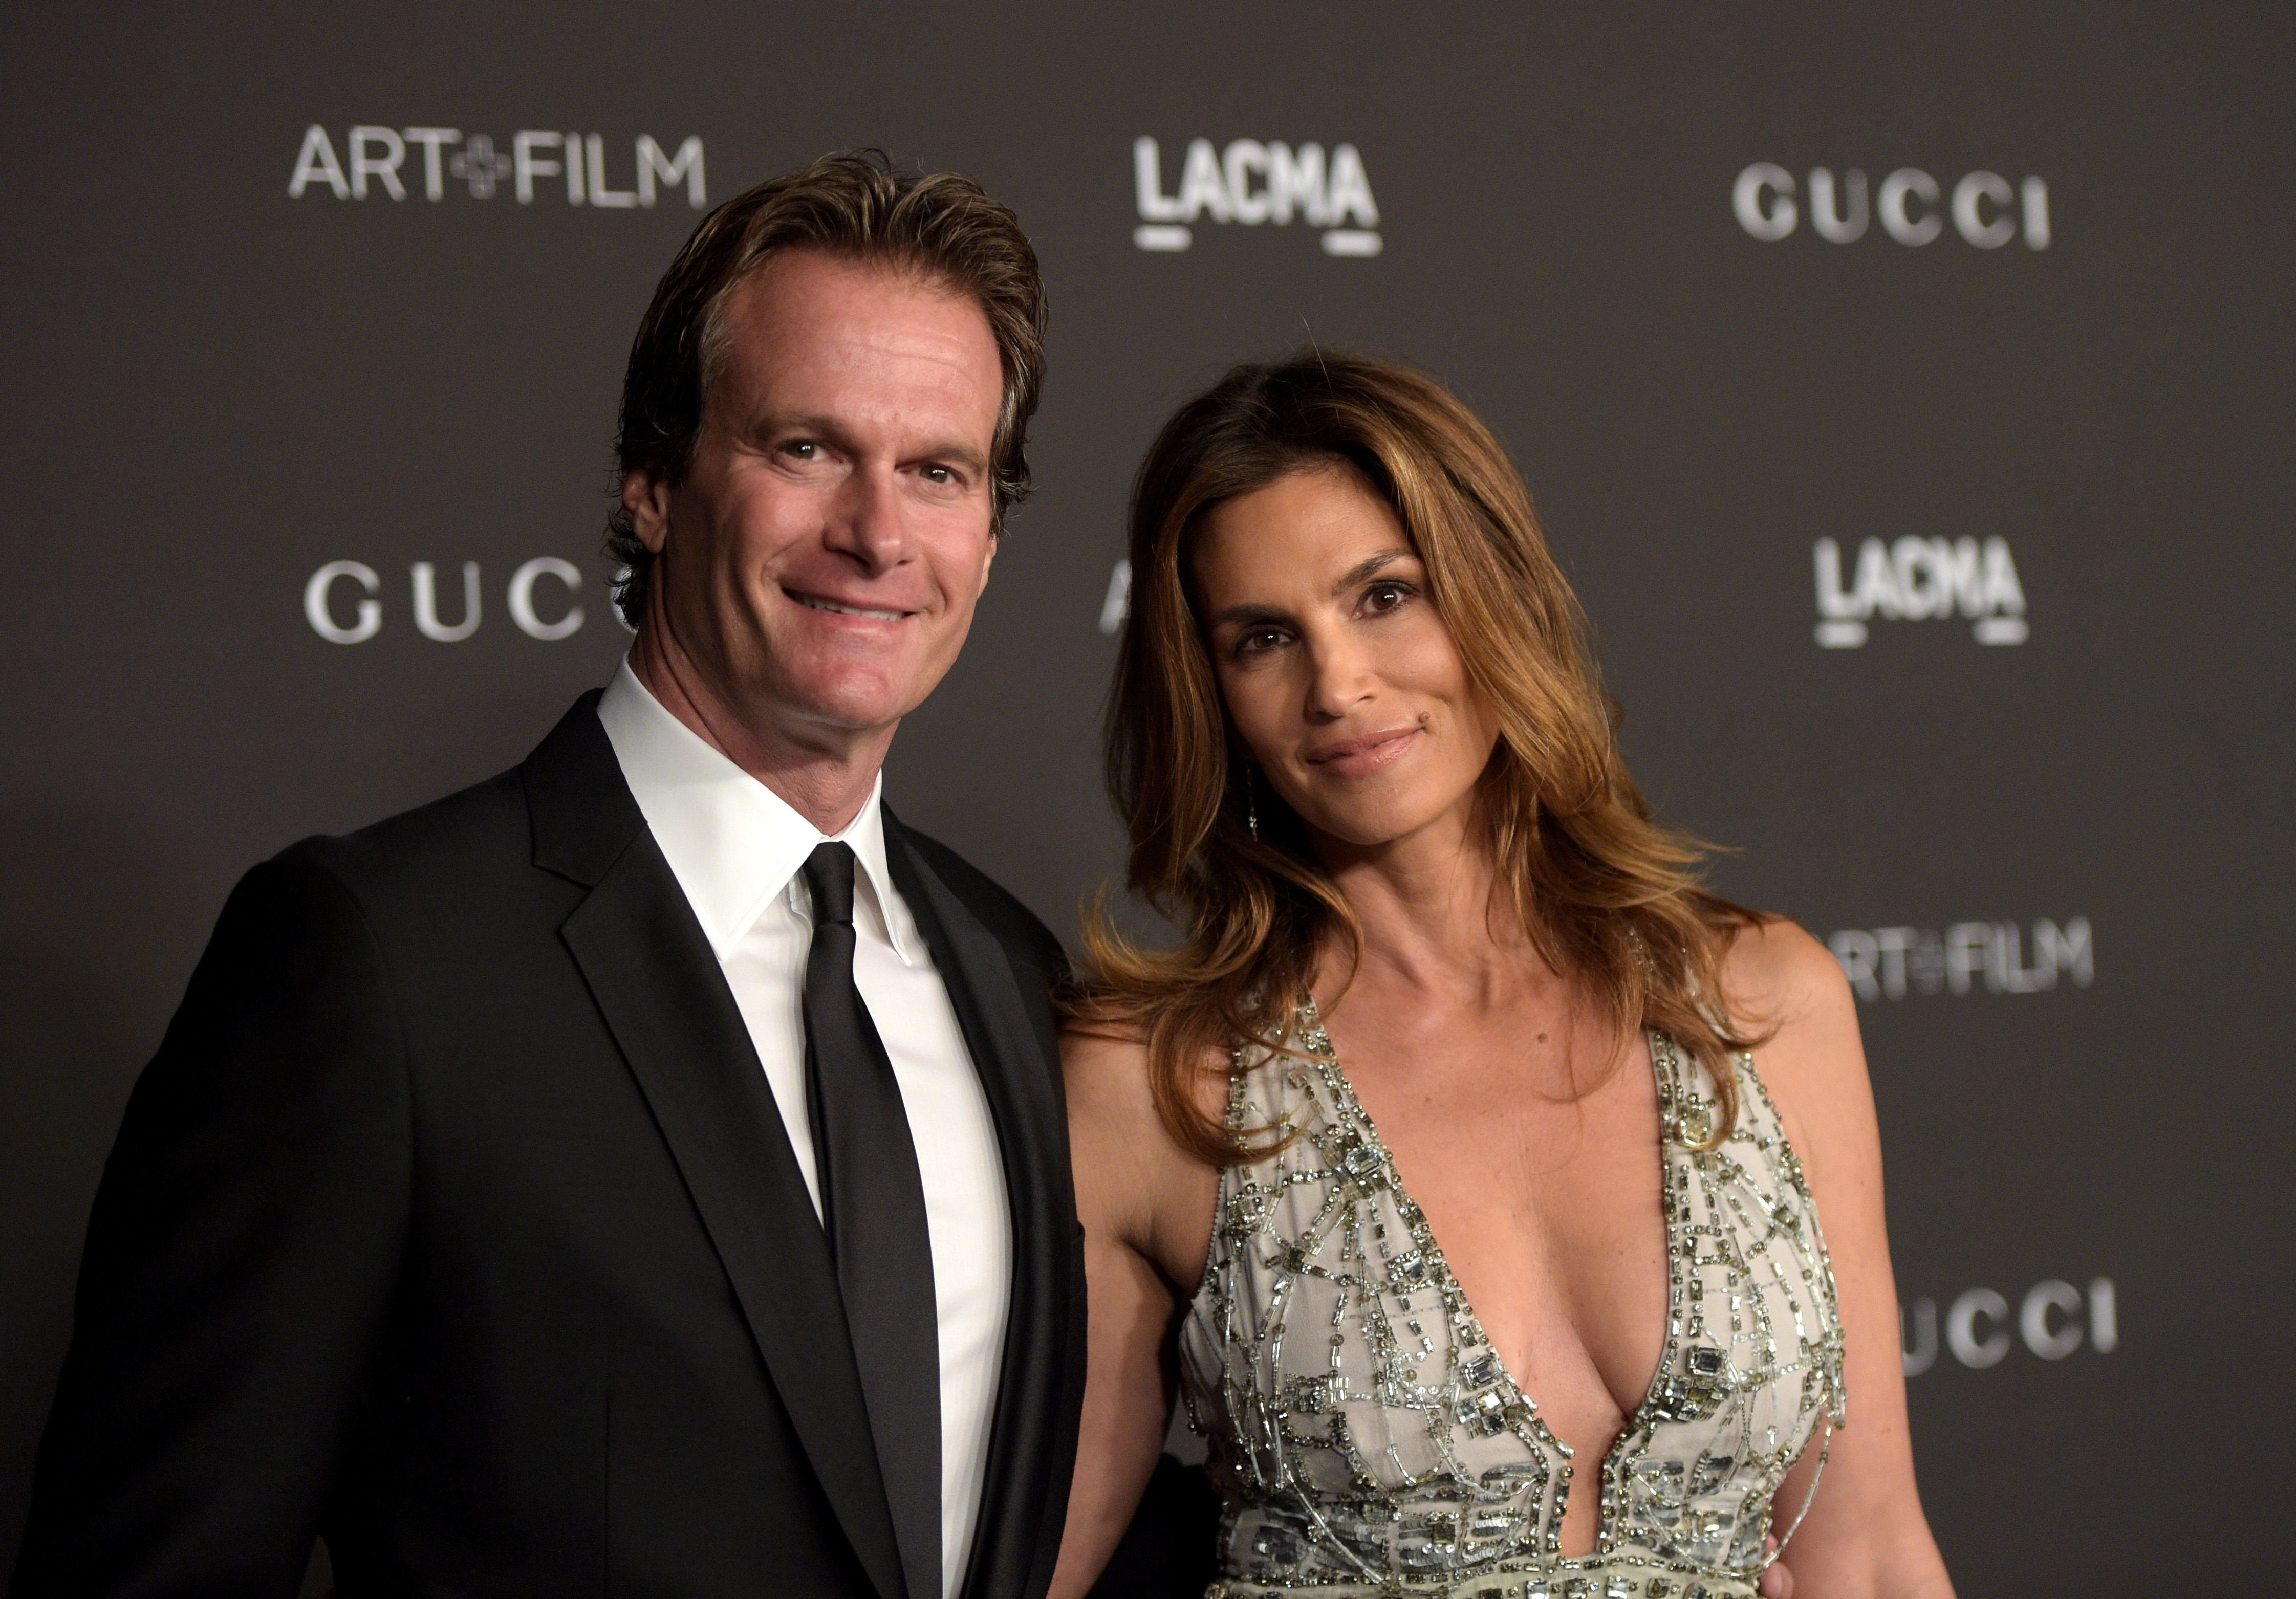 Cindy Crawford and Rande Gerber at the 2014 LACMA Art + Film Gala on November 1, 2014 | Photo: Getty Images